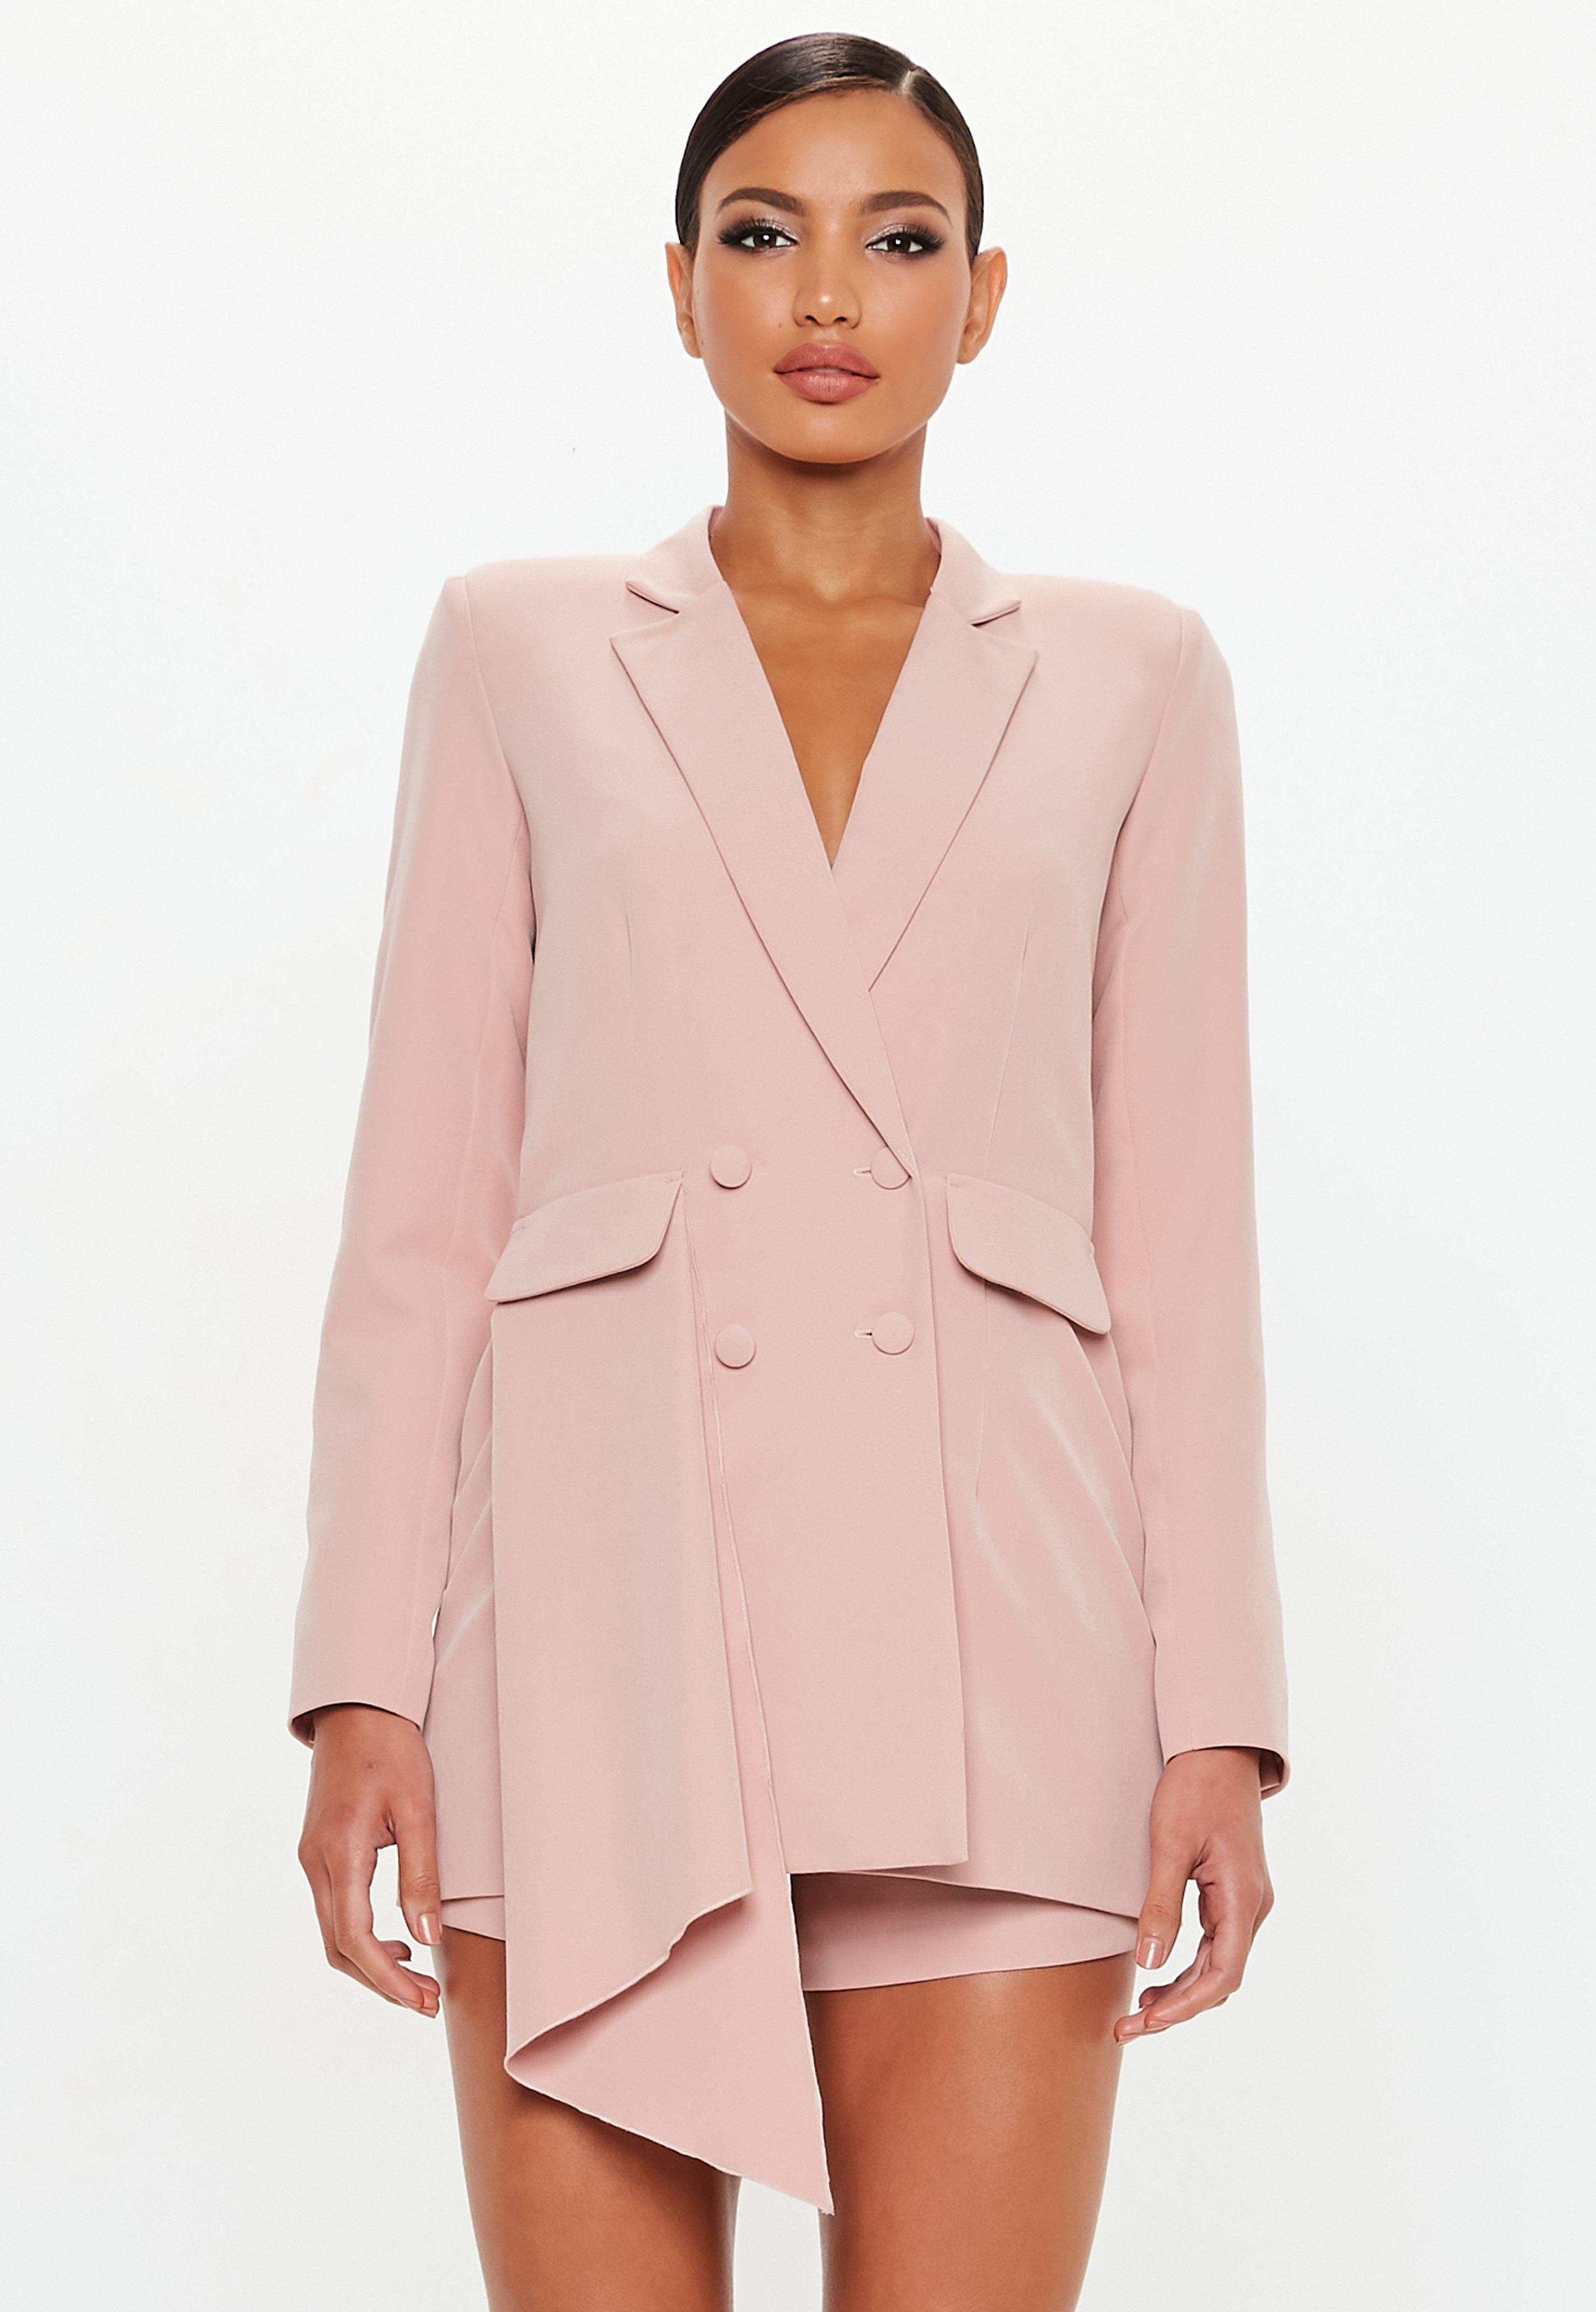 3fa8b3ea70d Lyst - Missguided Peace + Love Rose Tuxedo Blazer Playsuit in Pink